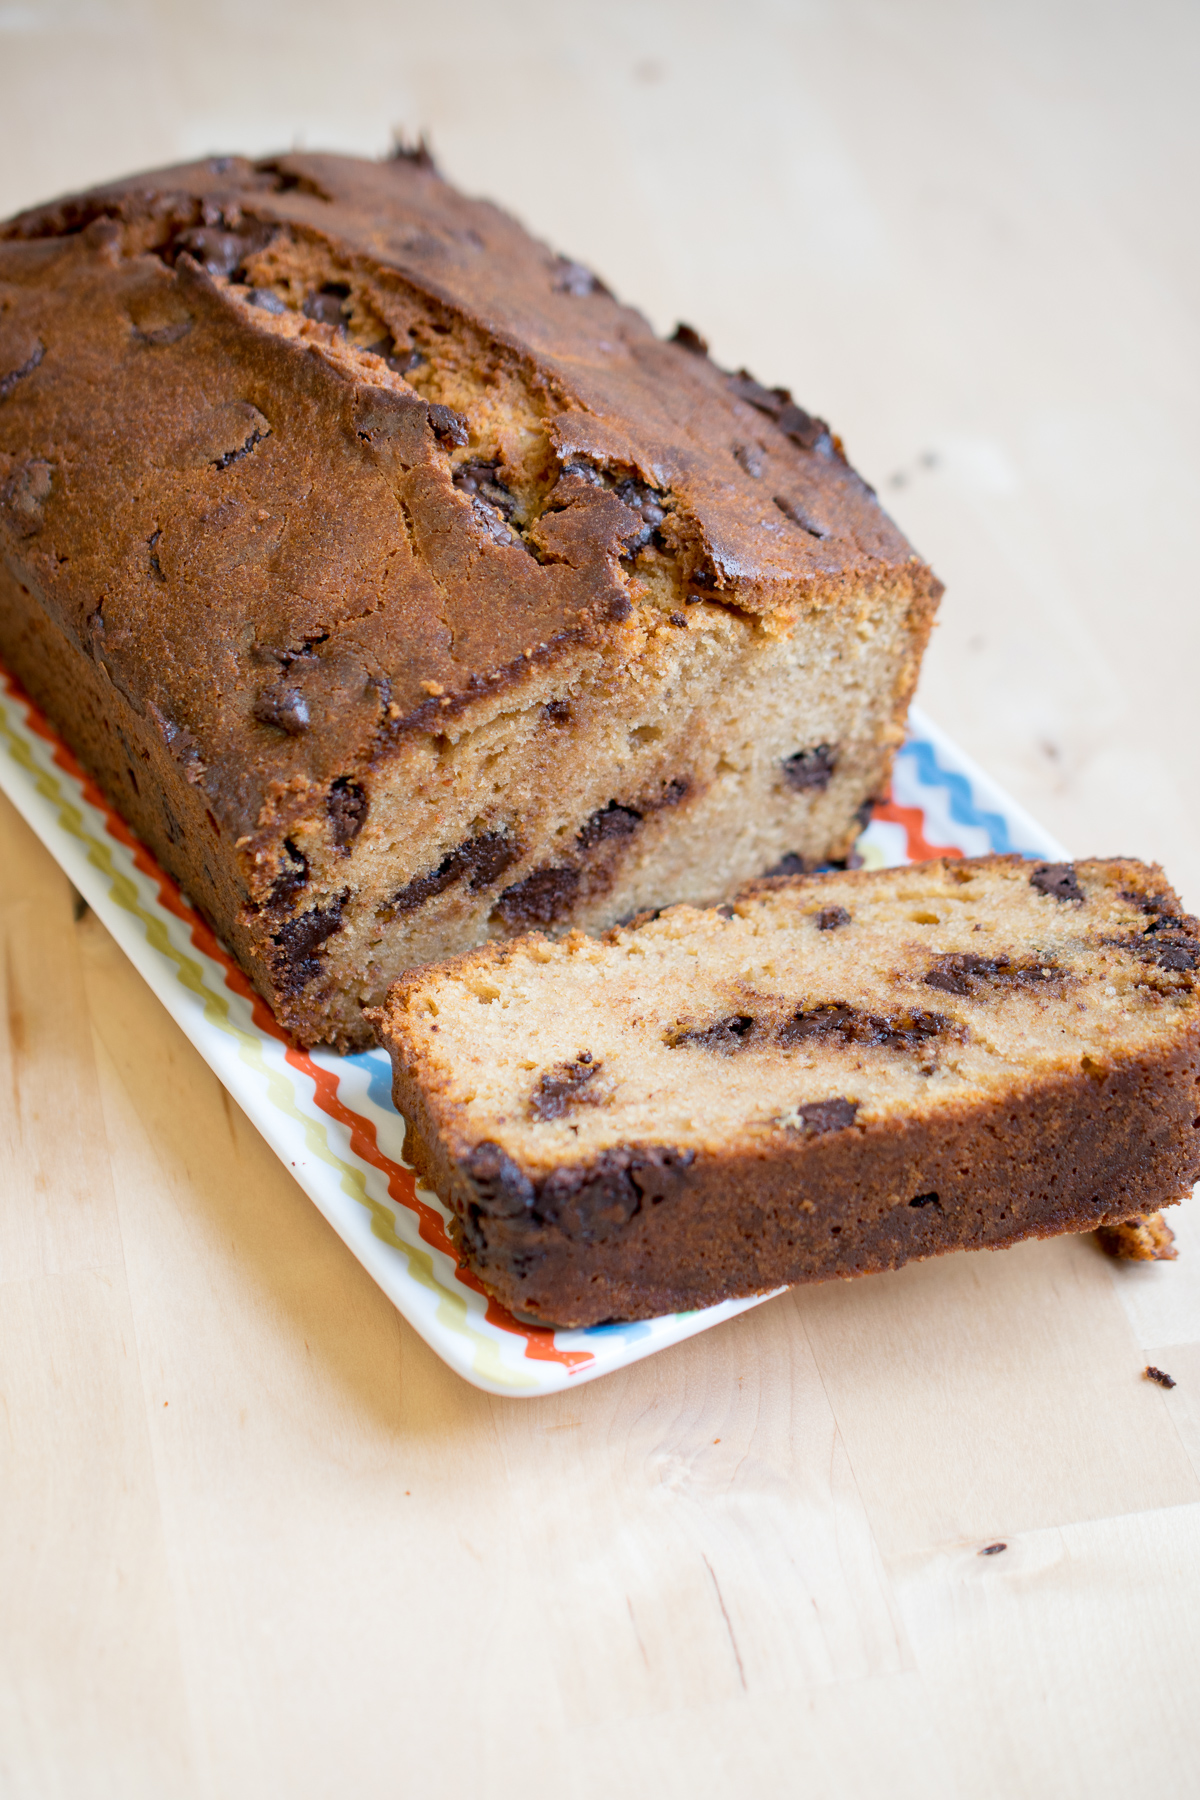 Choc chip caramel loaf cake - a simple cake made using caramelised condensed milk (dulce de leche) in place of sugar. And yes, it is as good as it sounds!